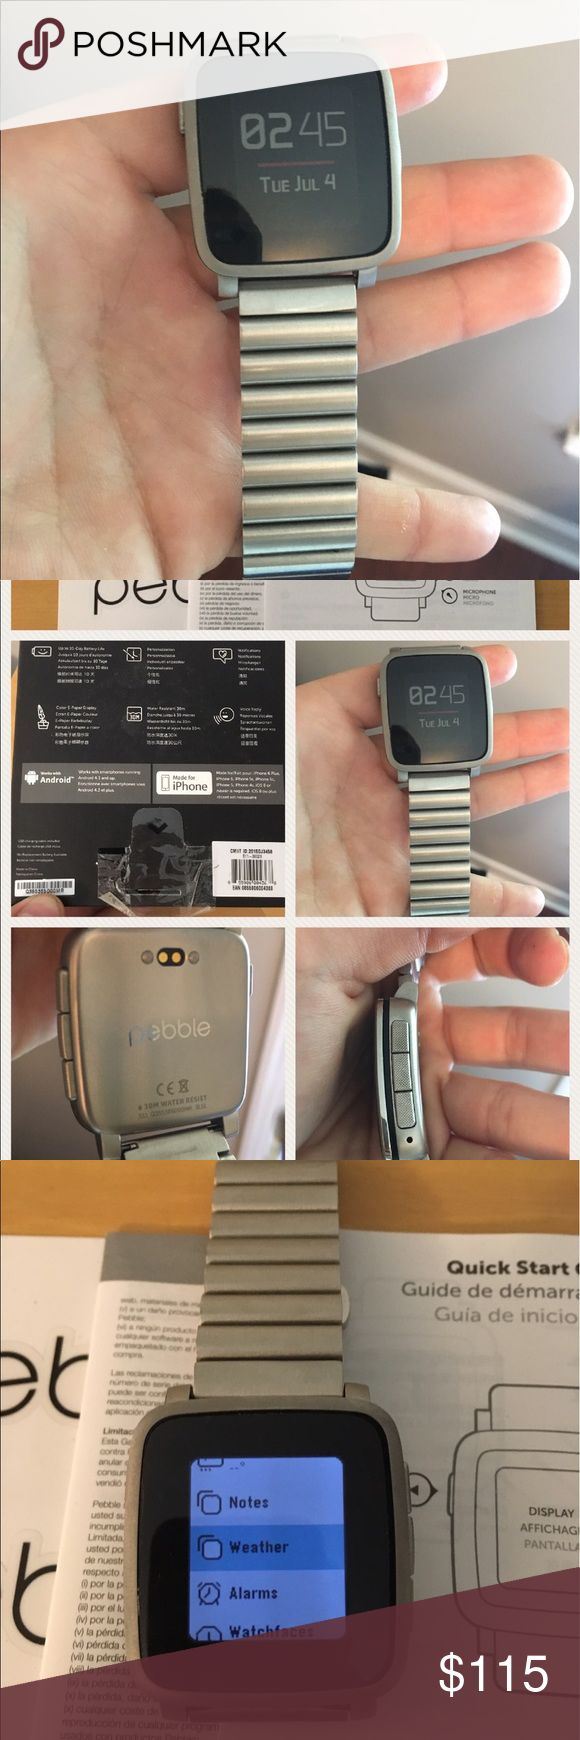 Smart Watch Pebble Time Steel smart watch. Works well for men or women. About 38mm, which is similar in size to the smallest Apple Watch. I bought this a few months back. However, I have about 15 watches in my collection and found that I didn't wear this one much. This works great to read texts, emails, and other notifications.   Has the weather, counts steps, etc. Battery lasts 6 DAYS on a single charge.   Nice silver metal band and a screen protector on it.  Comes with box, charging cable…